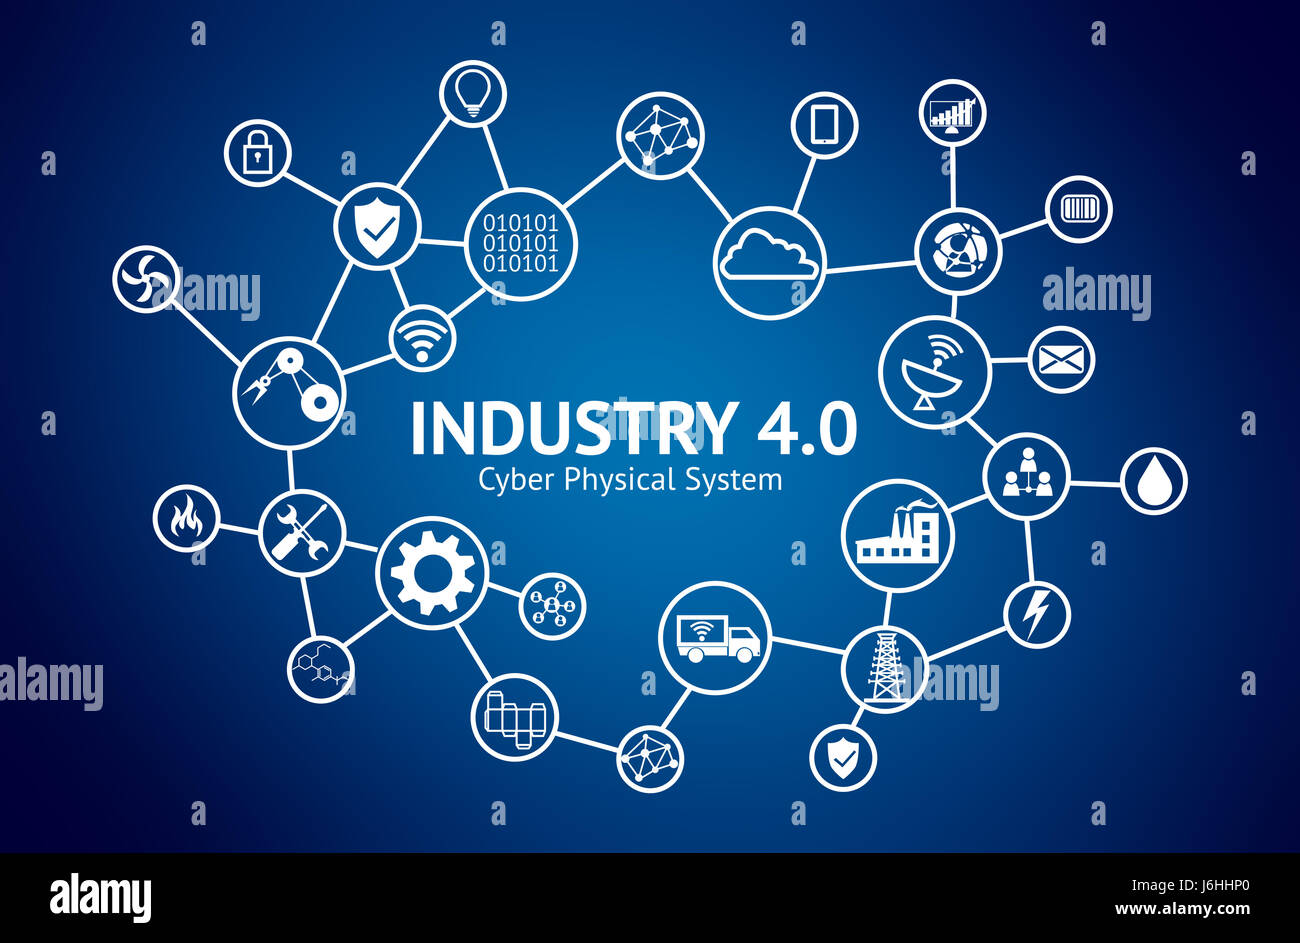 Technology Management Image: Industrial 4.0 Cyber Physical Systems Concept , Icon Of